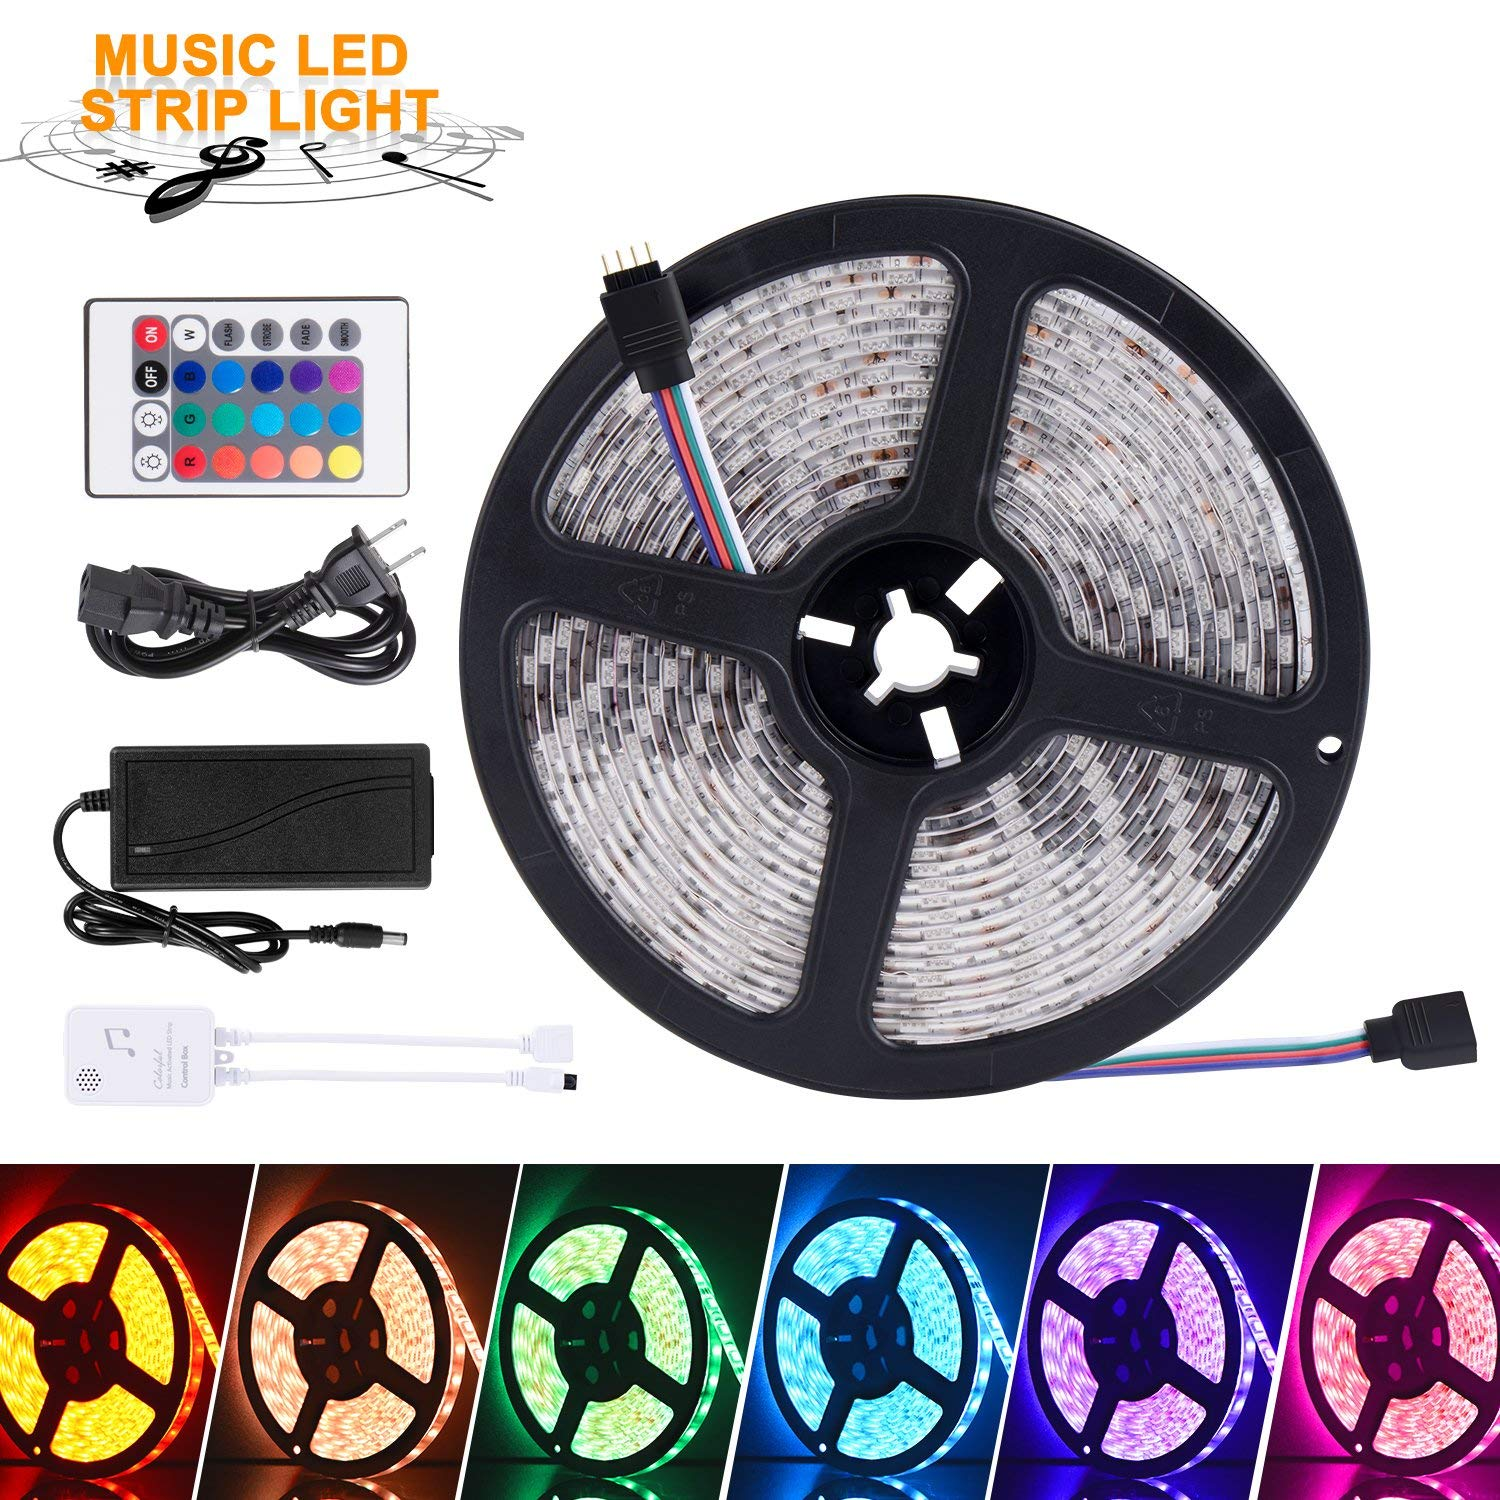 SUNNEST Music Activated LED Strip Light Kit, Waterproof 16.4ft 300 LEDs RGB SMD 5050 LED Tape with Remote Controller, IR Receiver, Power Supply, Sync with Music